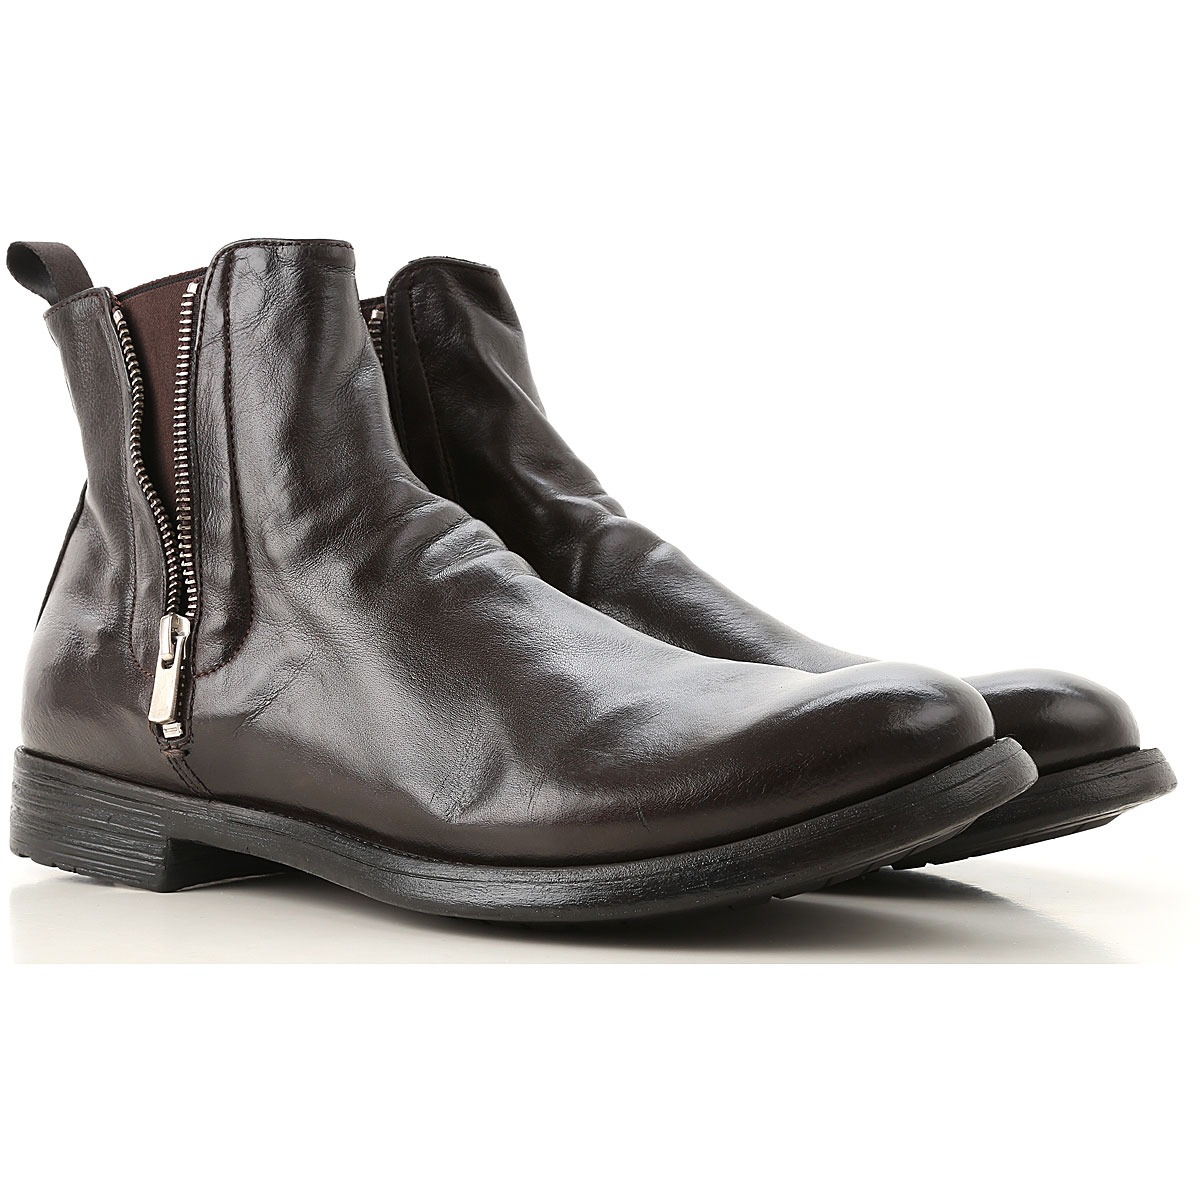 Image of Officine Creative Boots for Men, Booties, Black, Leather, 2017, 10 10.5 7.5 8 9